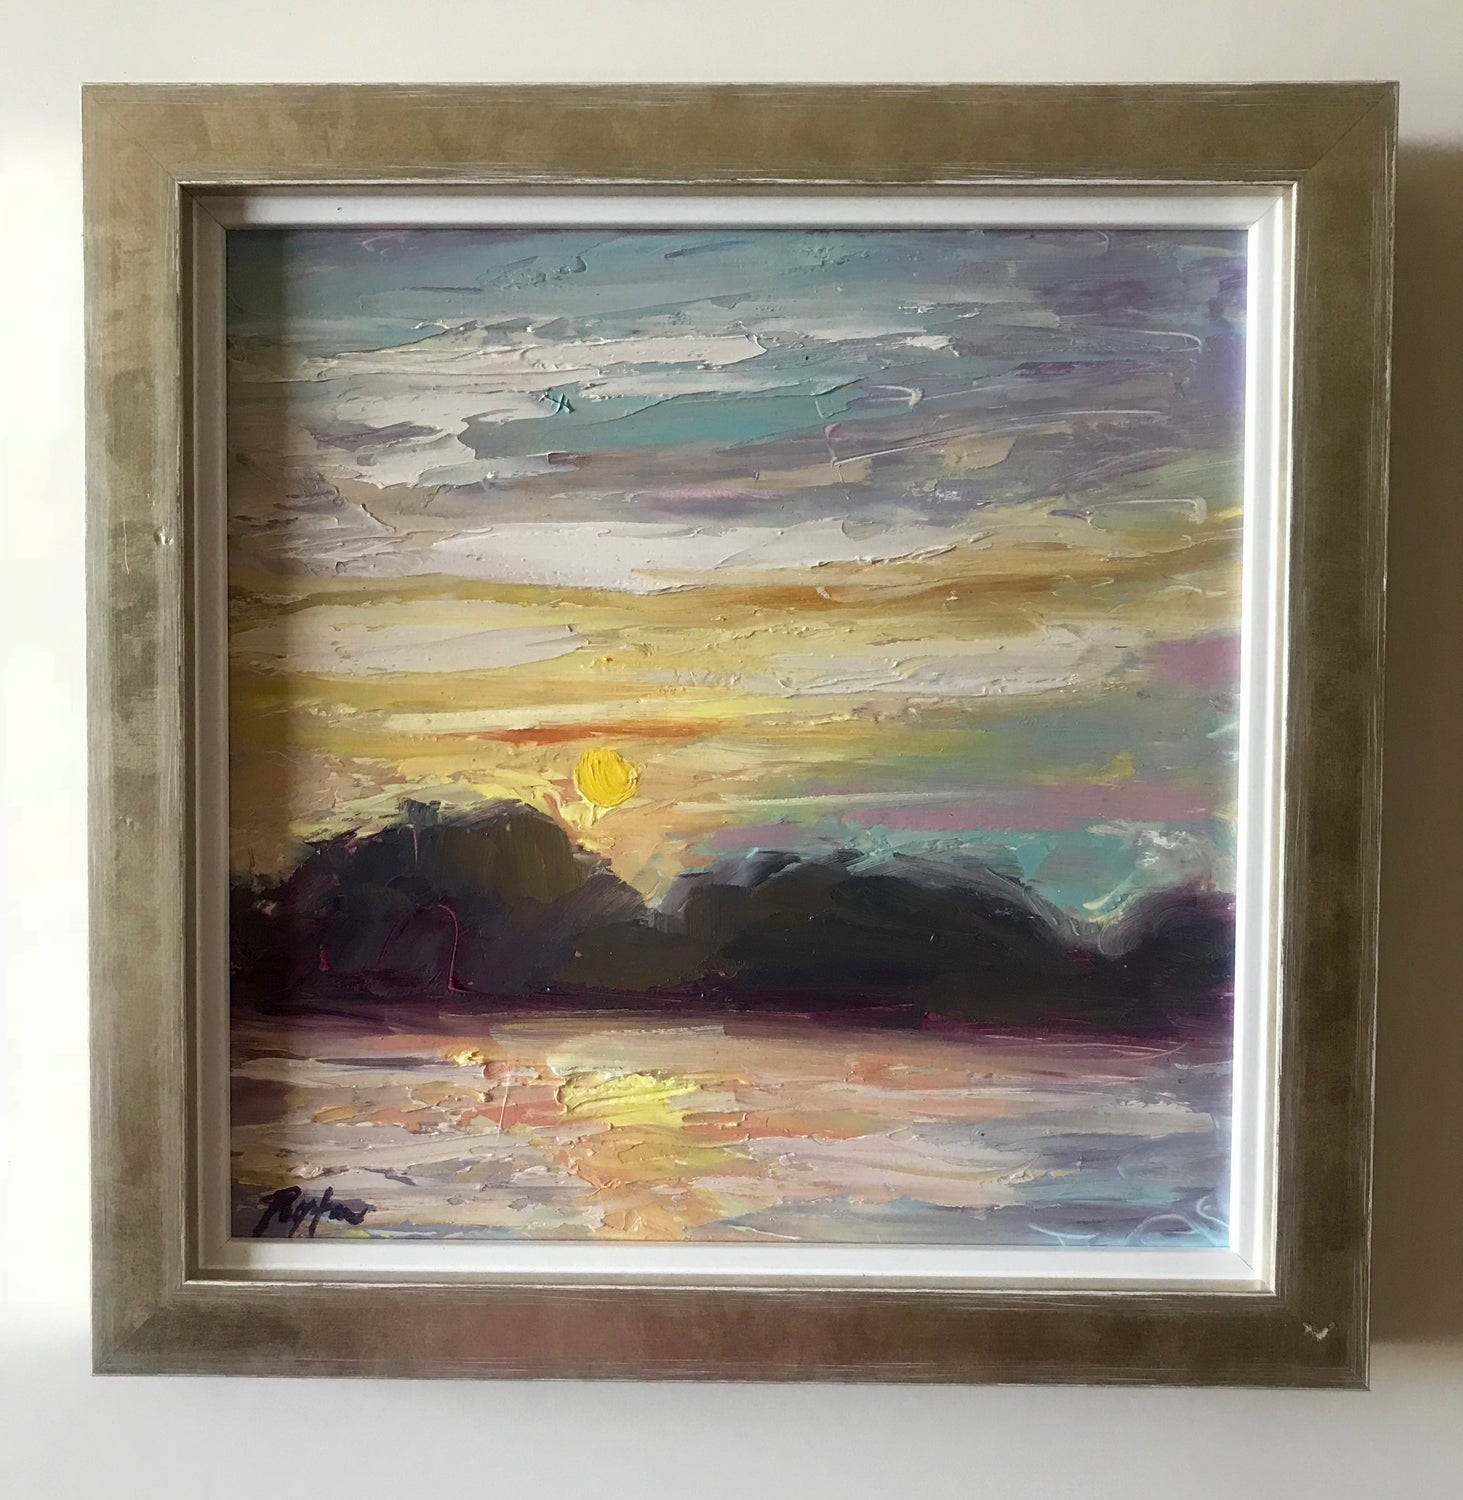 Blue Sunset, Size 10 x 10, available at the Caron Gallery